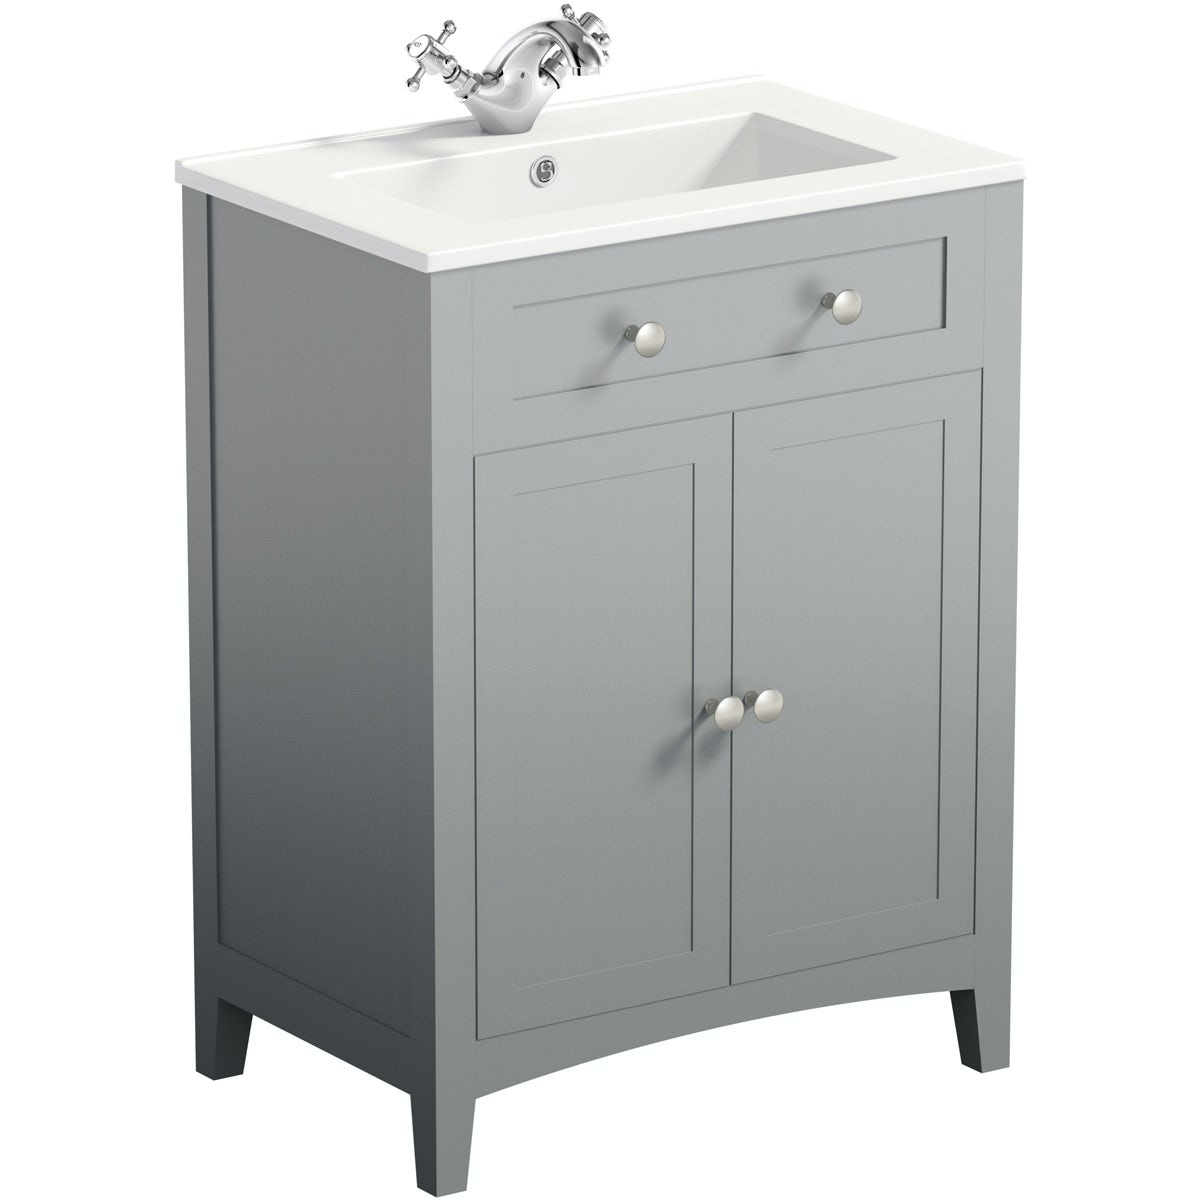 Bathroom Sinks Vanity Units the bath co. camberley grey vanity unit with basin 600mm